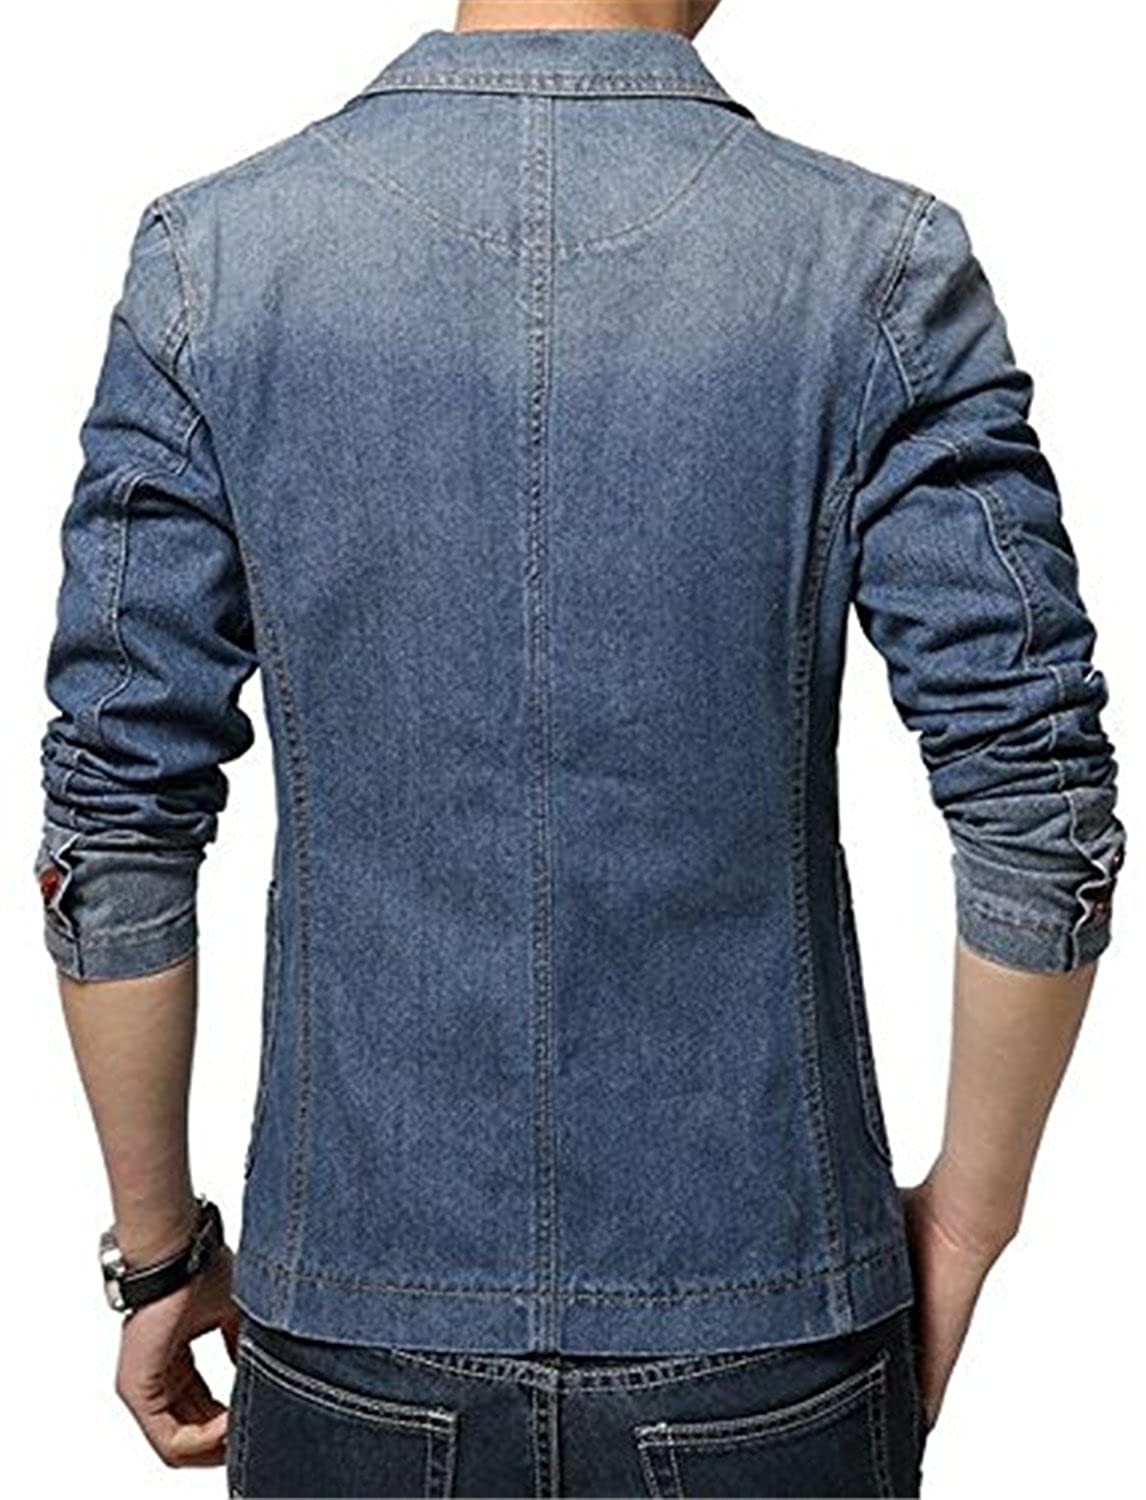 464df73d0d5a 70%OFF Cheryl Bull Fashion Mens Denim Slim Fit Suits Casual One Button  Solid Blazer